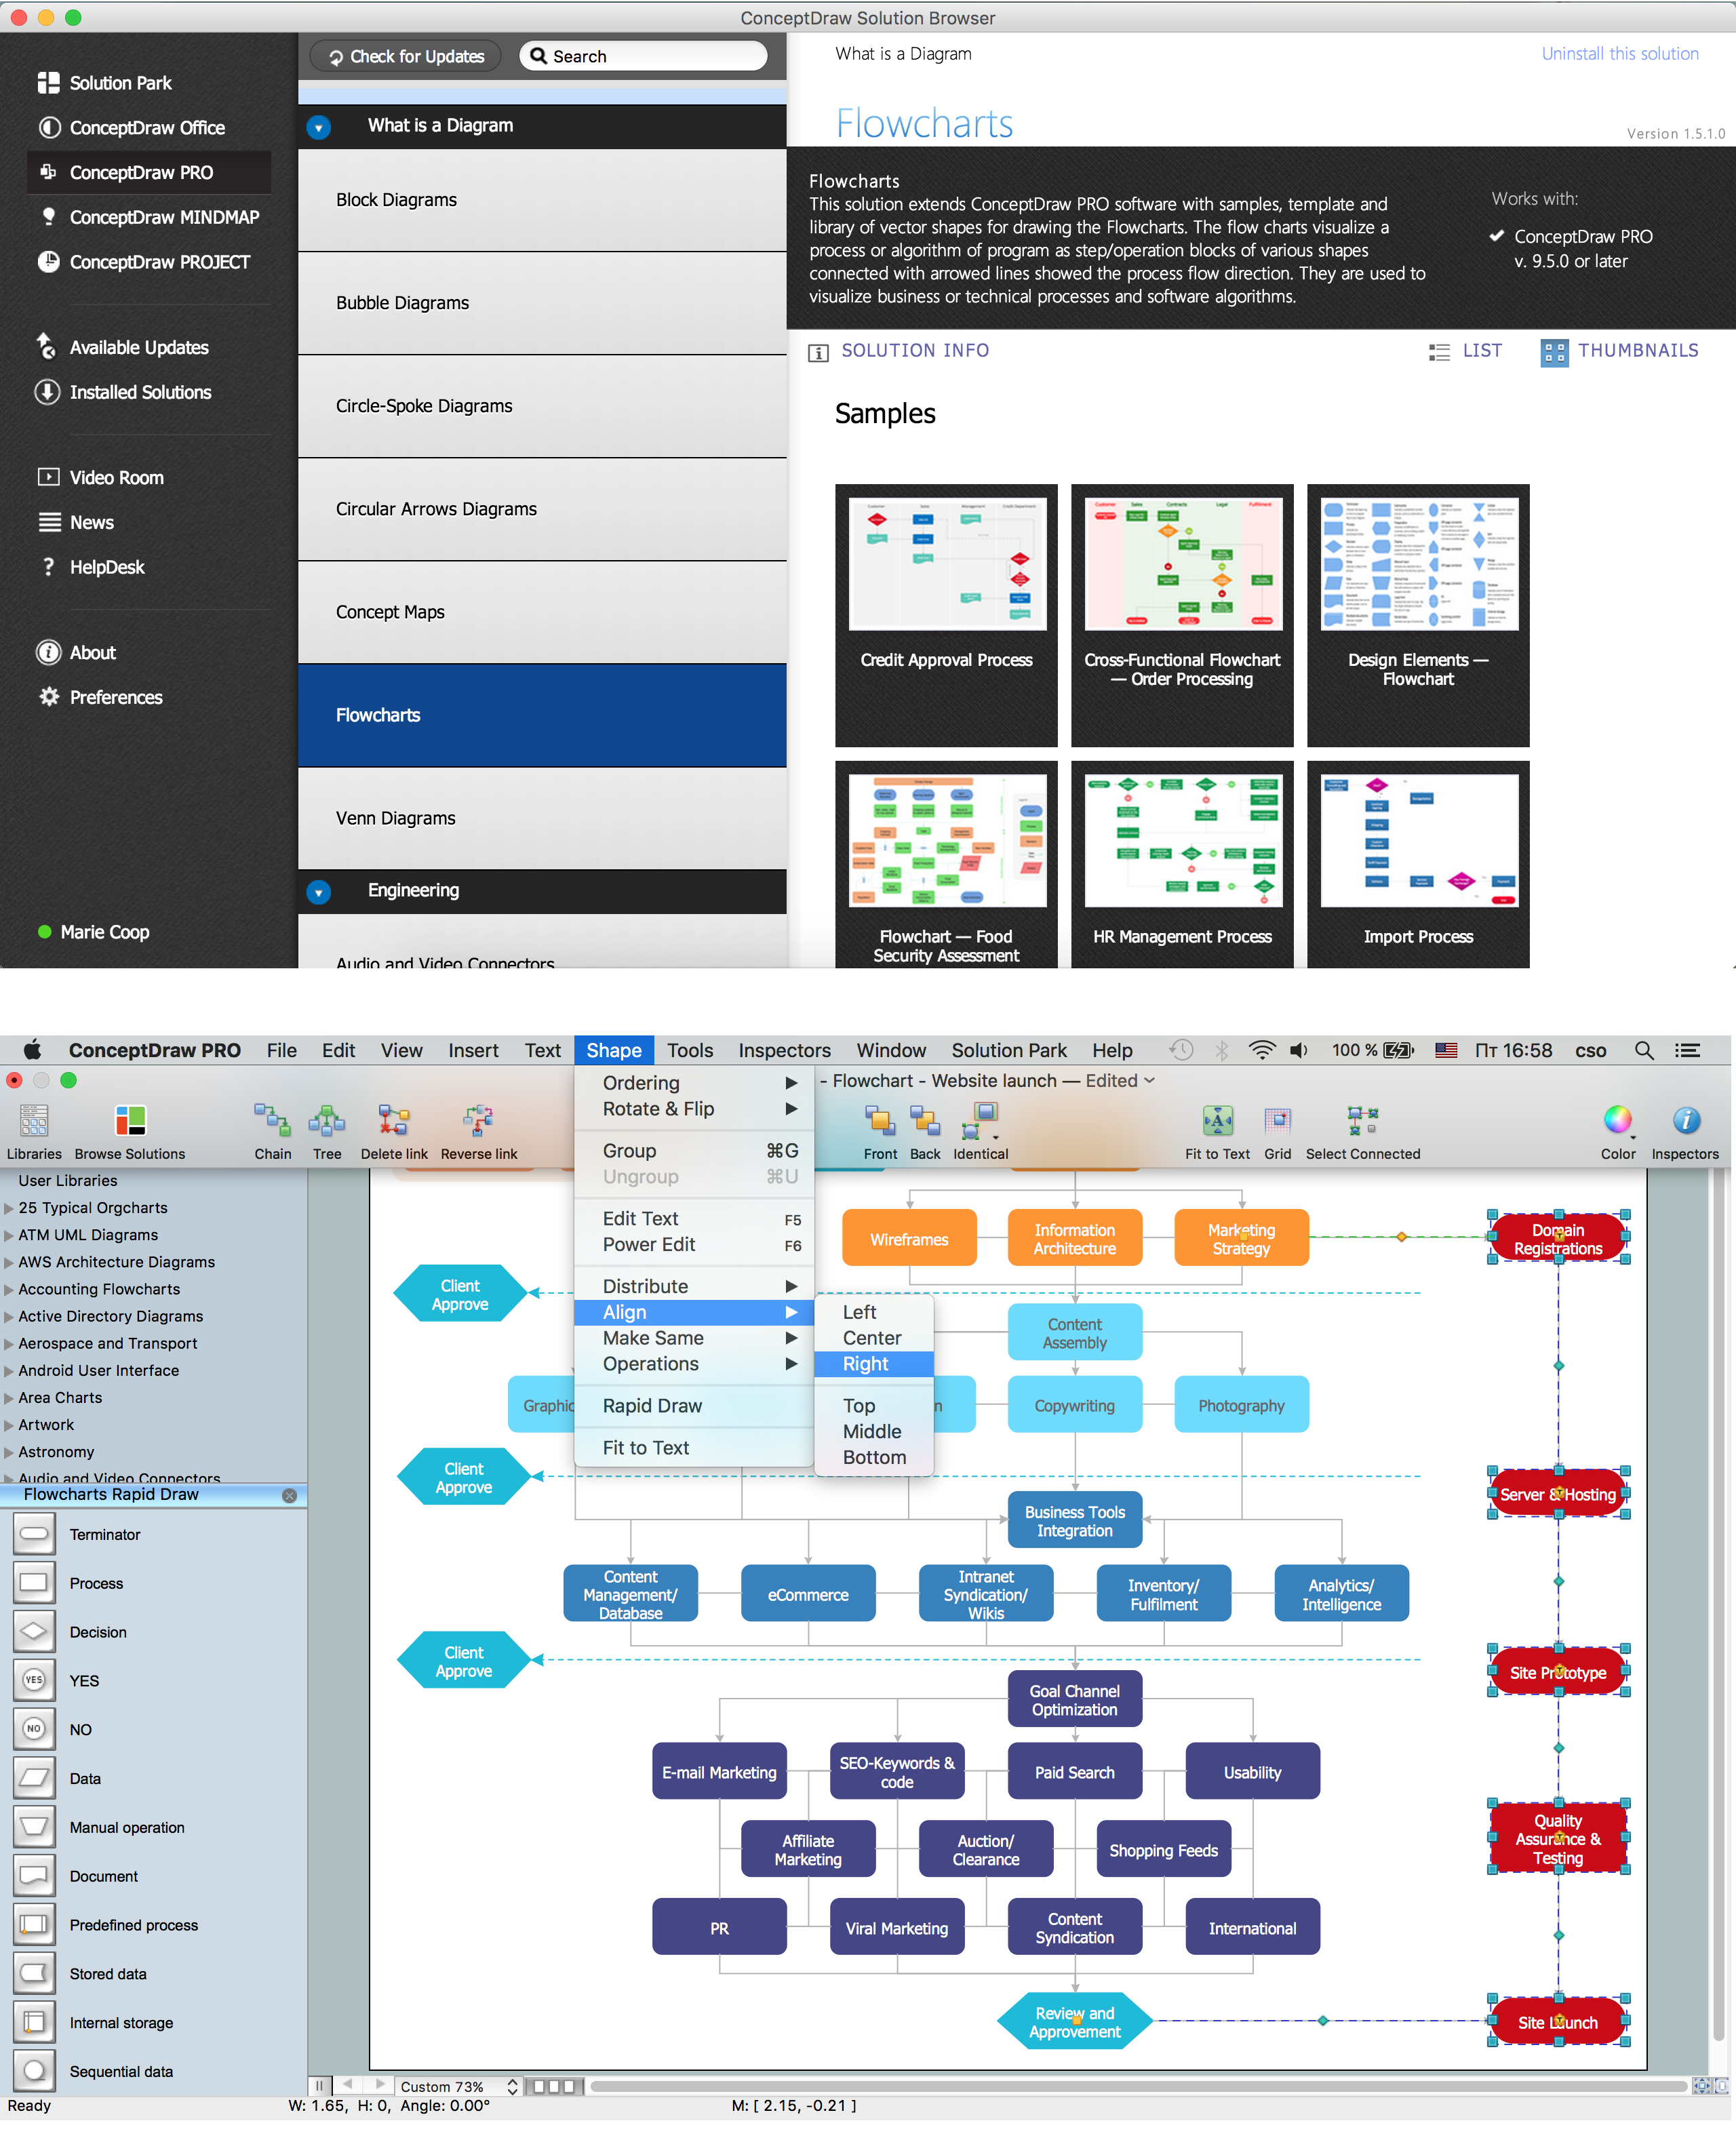 software release process flow diagram chevy sonic stereo wiring flowchart symbols and meaning provides a visual